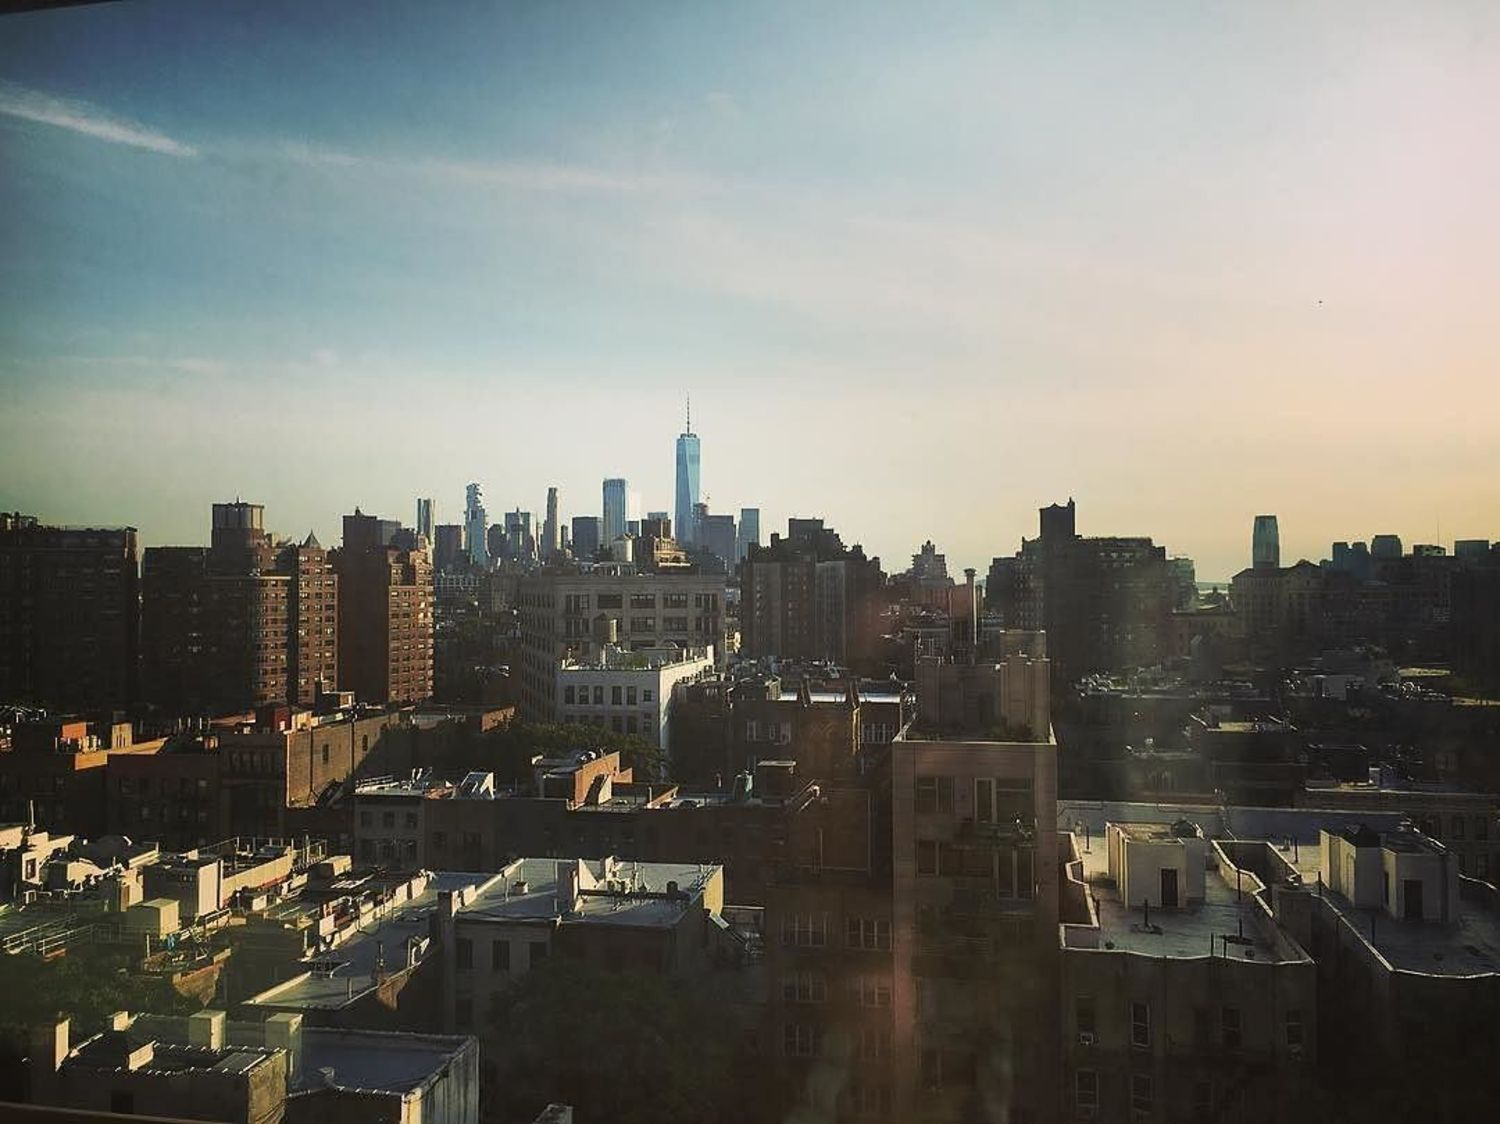 New York, New York. Photo via @jenni_around #viewingnyc #newyorkcity #newyork